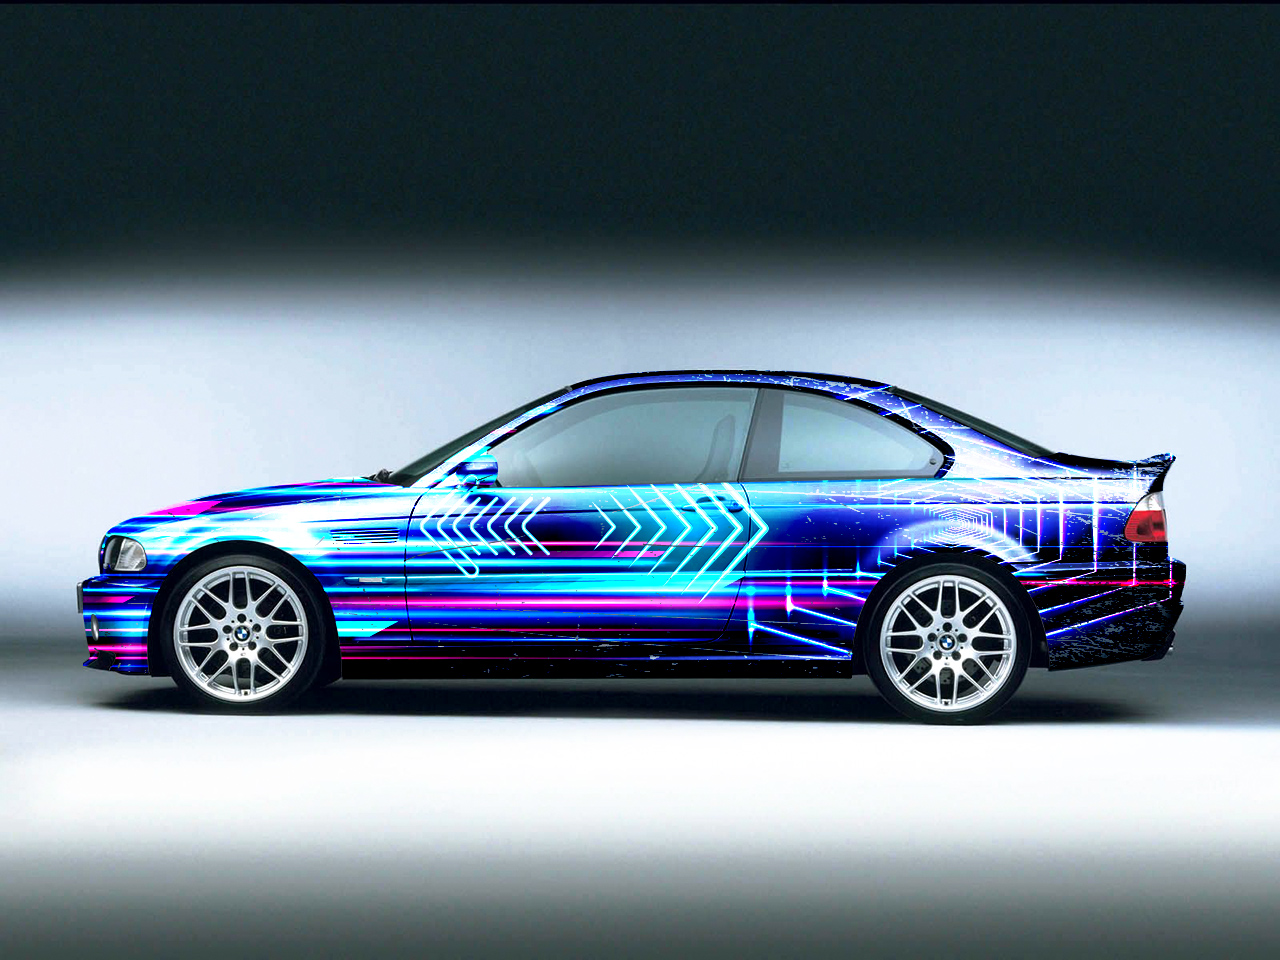 Synthwave Bmw M3 E46 Race Car Wrap 5 Car Wrap Designs For A Business In United Kingdom